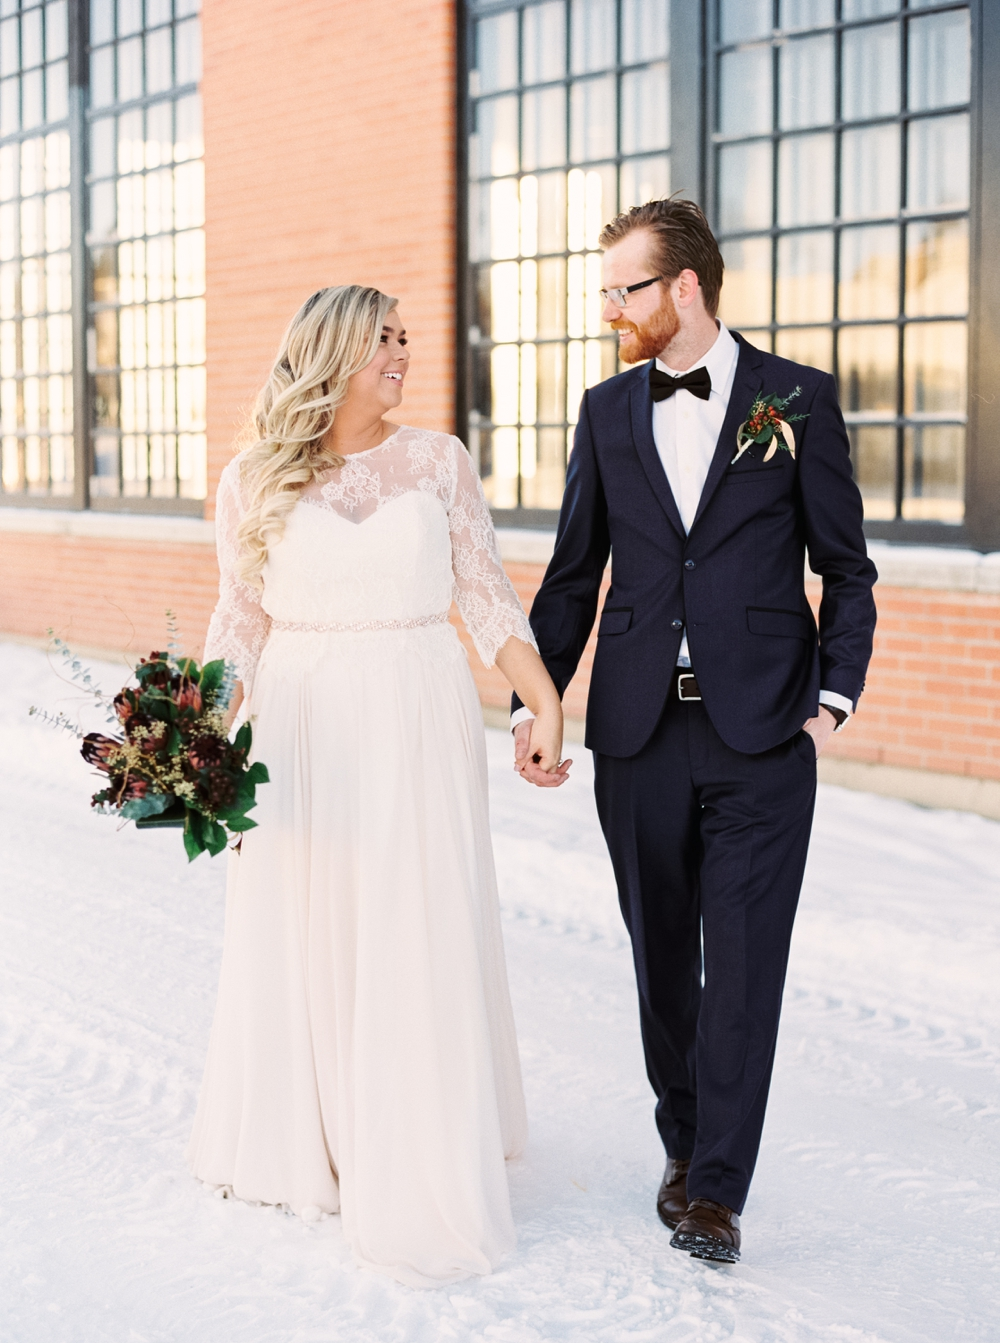 Calgary Wedding Photographers | New years Eve Wedding | Heritage Park guns Dairy Barn Wedding | Blush and Rose Gold | Winter Wedding